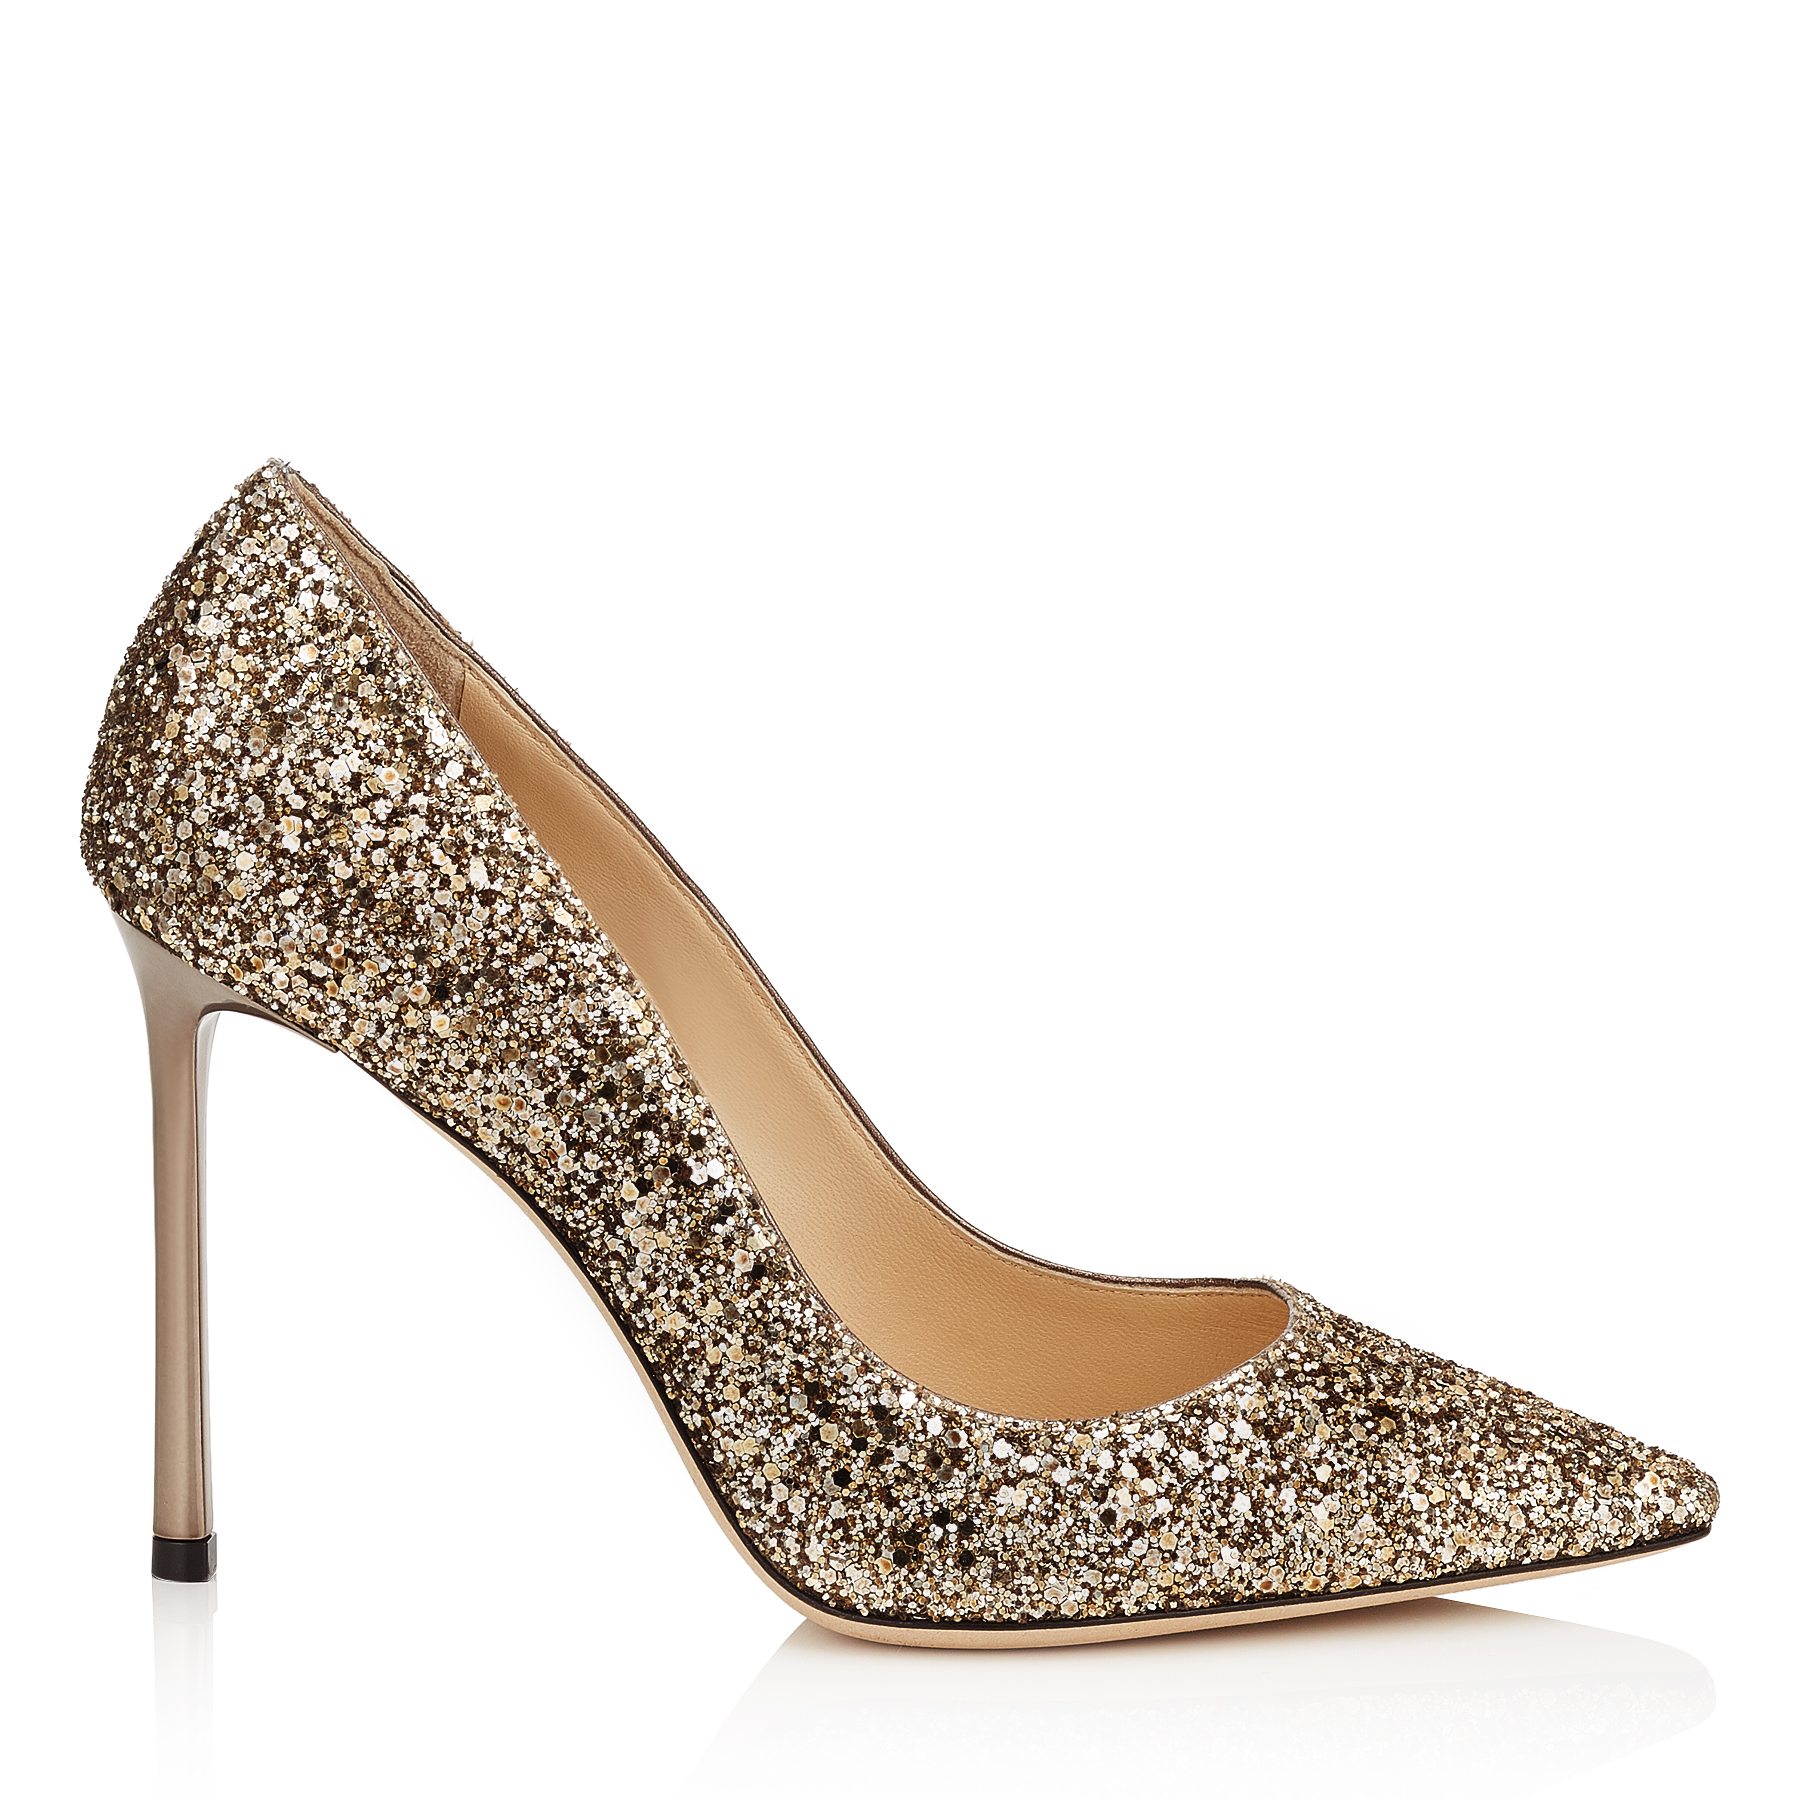 ROMY 100 Antique Gold Coarse Glitter Pointy Toe Pumps